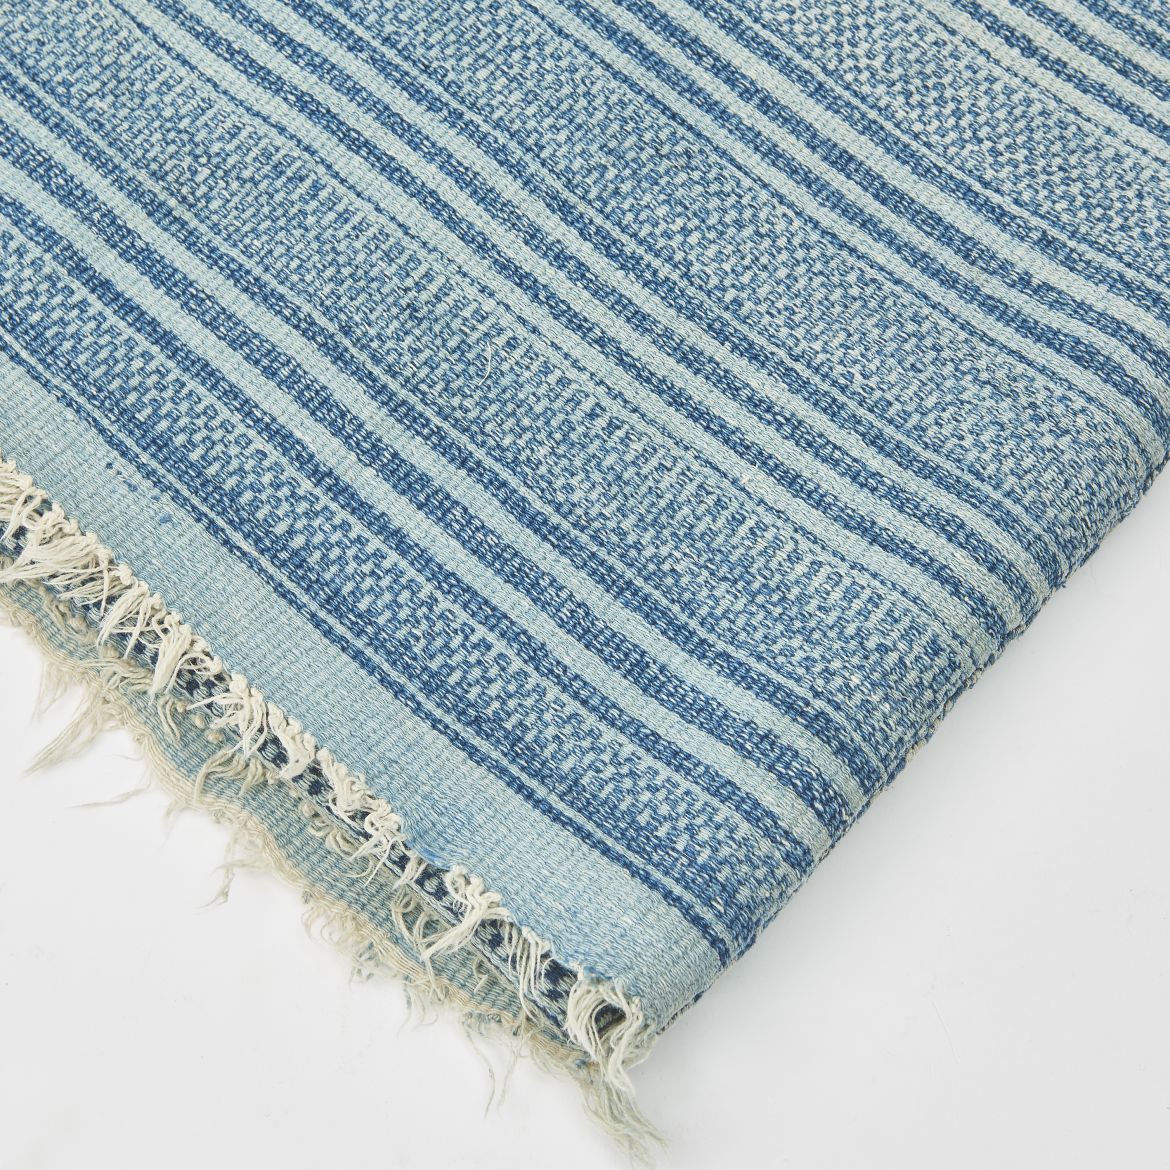 Indigo Dyed African Throw